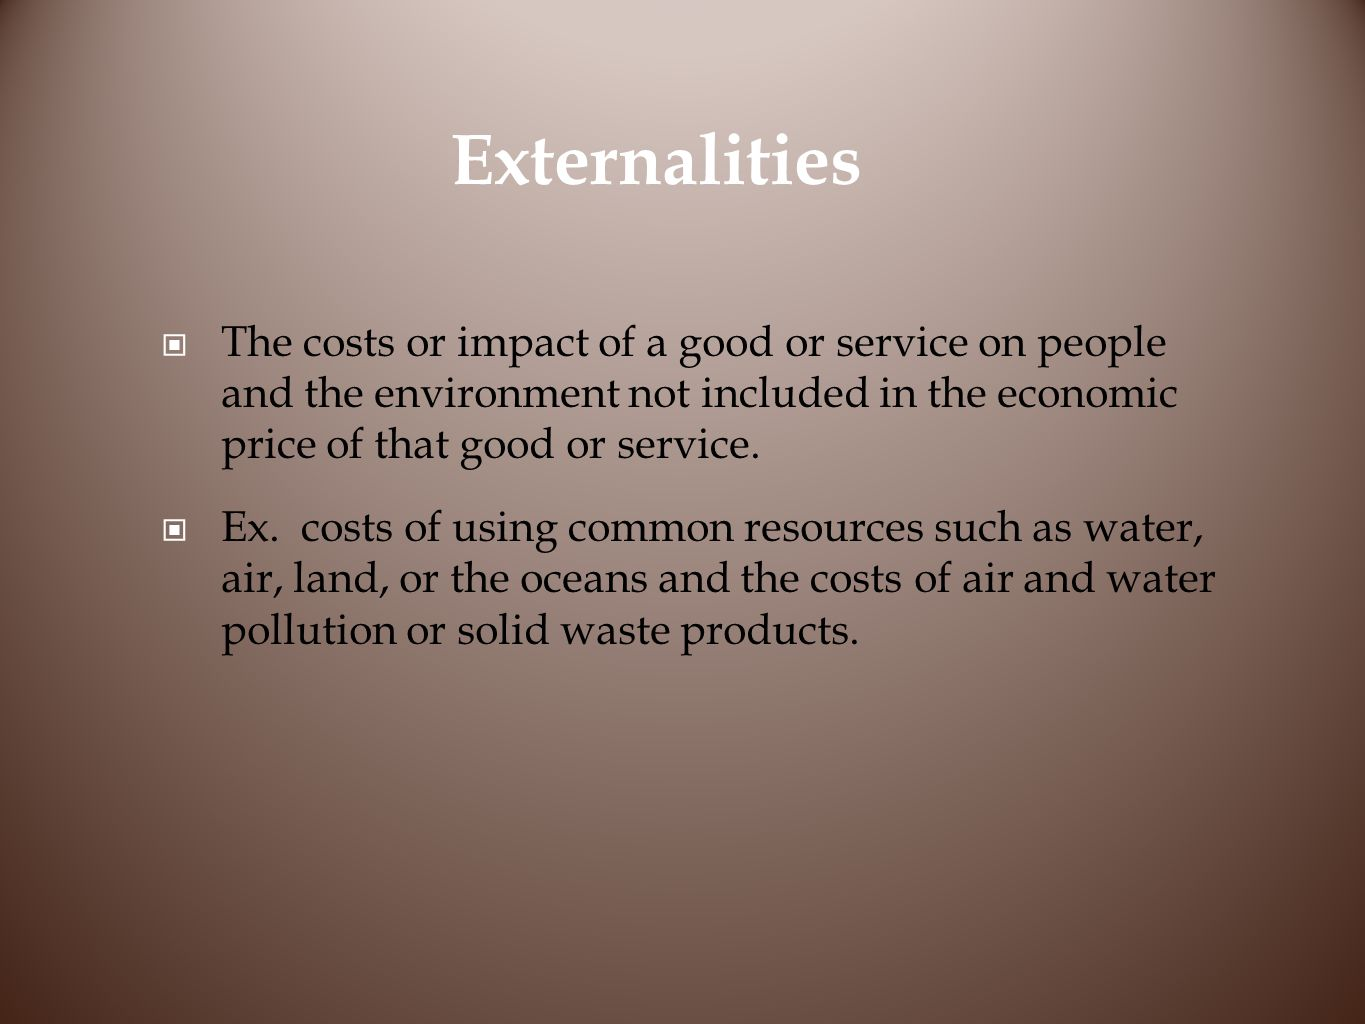 Externalities The costs or impact of a good or service on people and the environment not included in the economic price of that good or service.